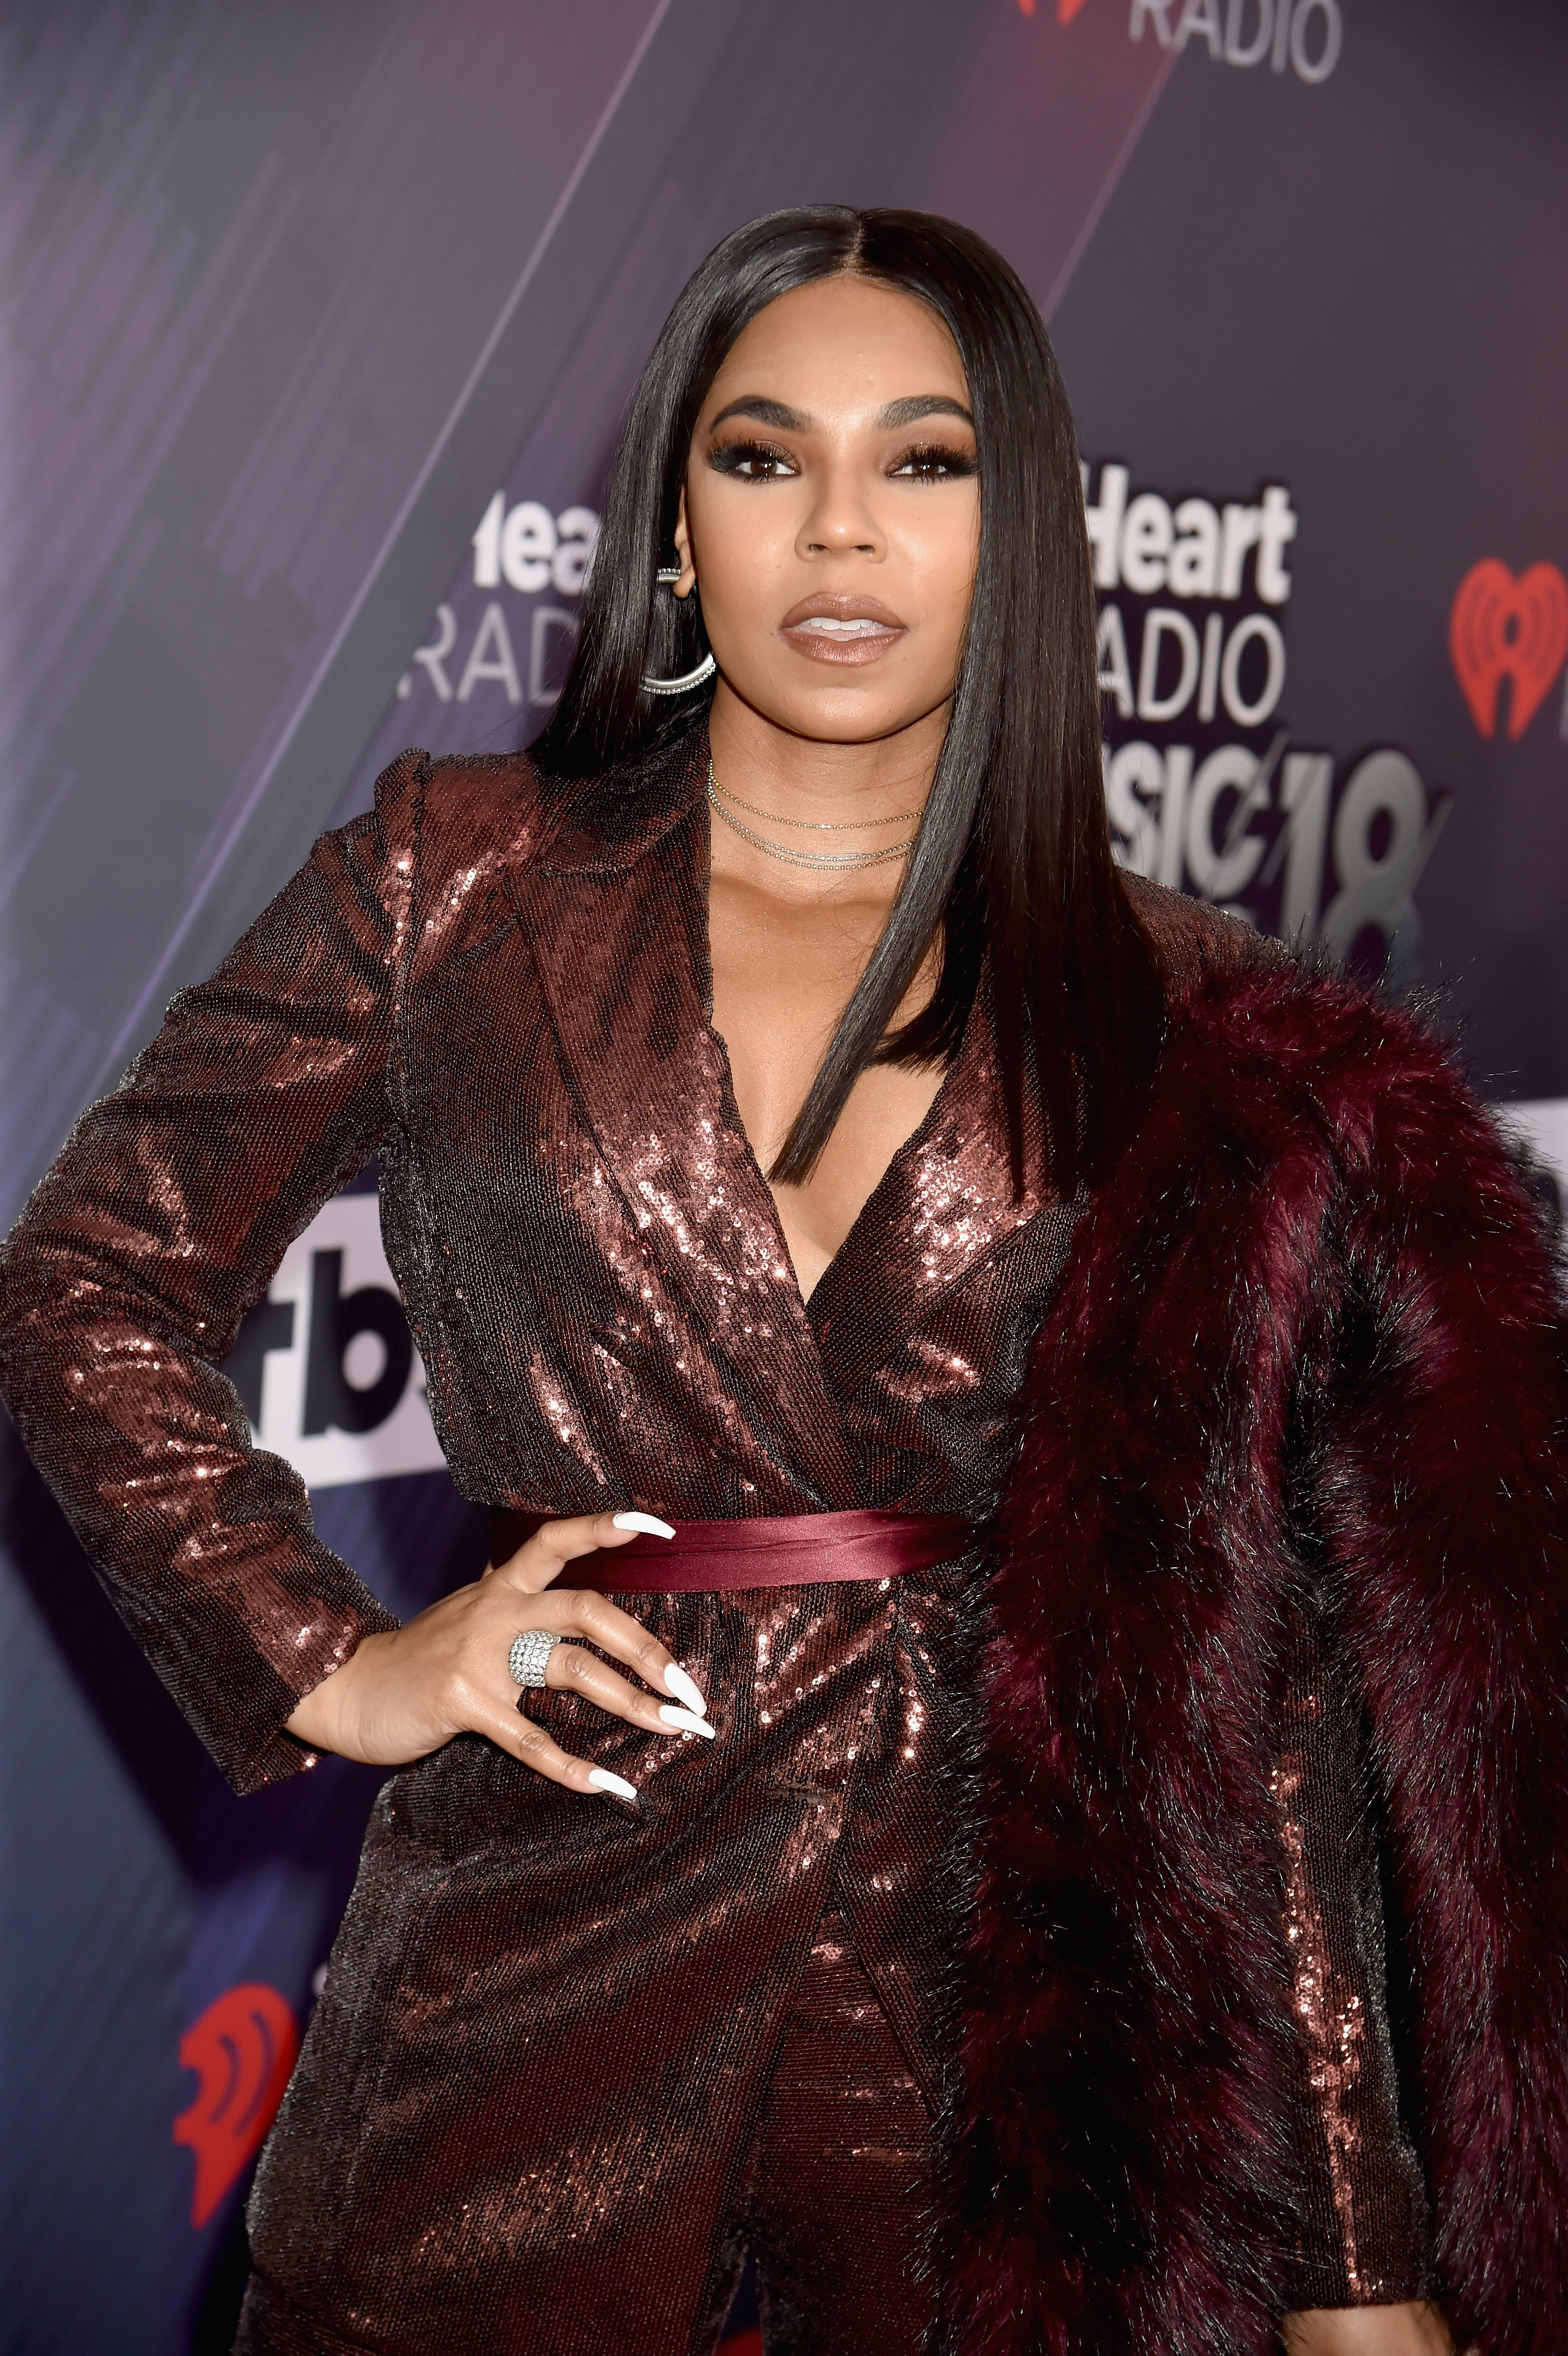 Ashanti at the iHeartRadio Music Awards on March 11, 2018 in Inglewood, California | Photo: Getty Images